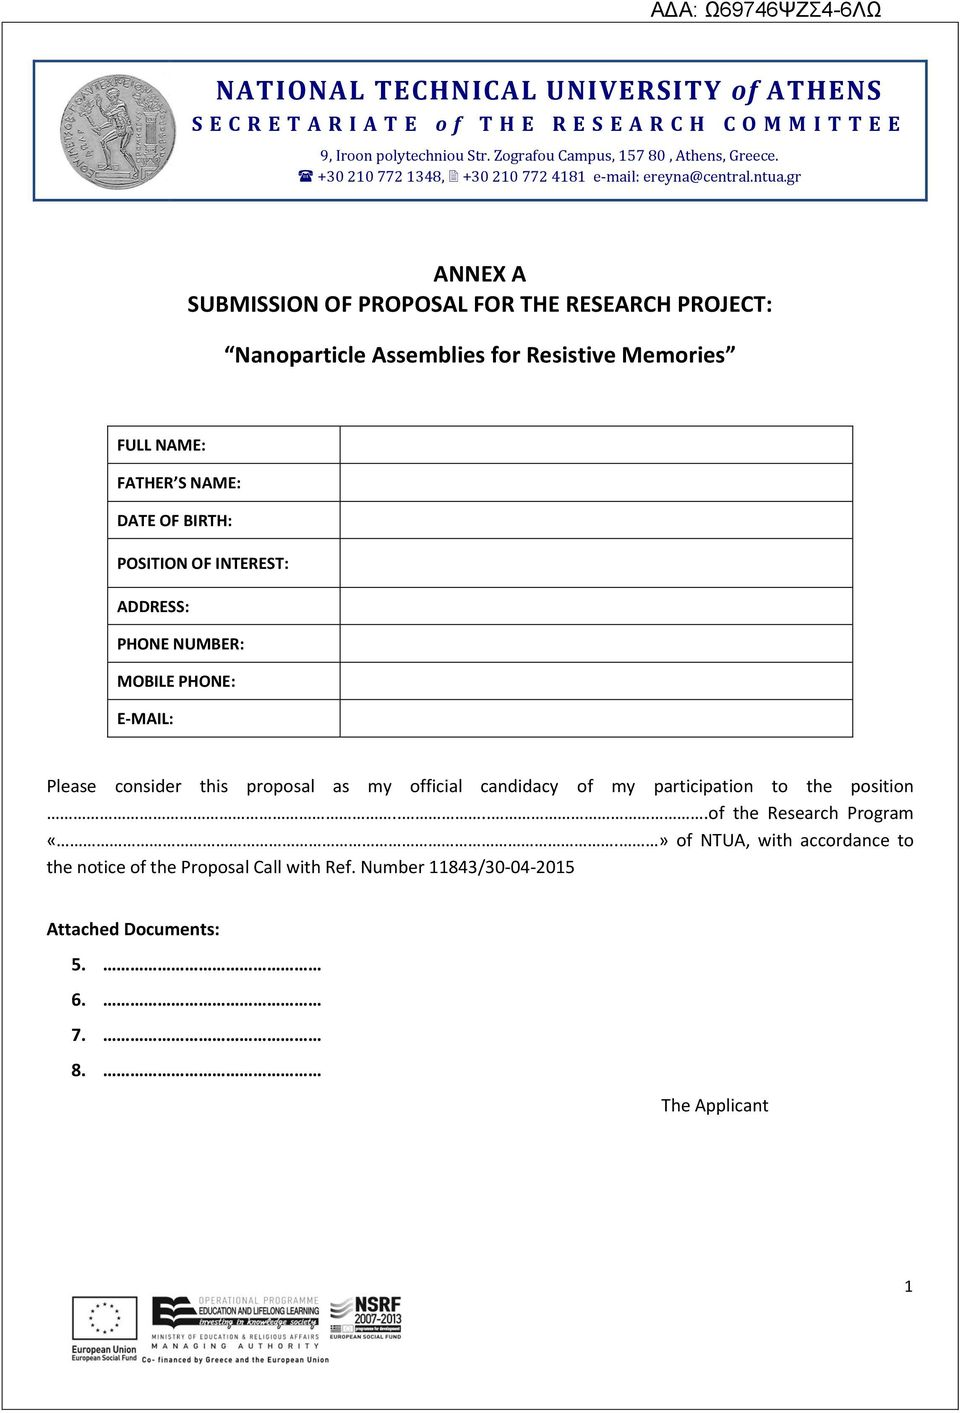 gr ANNEX Α SUBMISSION OF PROPOSAL FOR THE RESEARCH PROJECT: Nanoparticle Assemblies for Resistive Memories FULL NAME: FATHER S NAME: DATE OF BIRTH: POSITION OF INTEREST: ADDRESS: